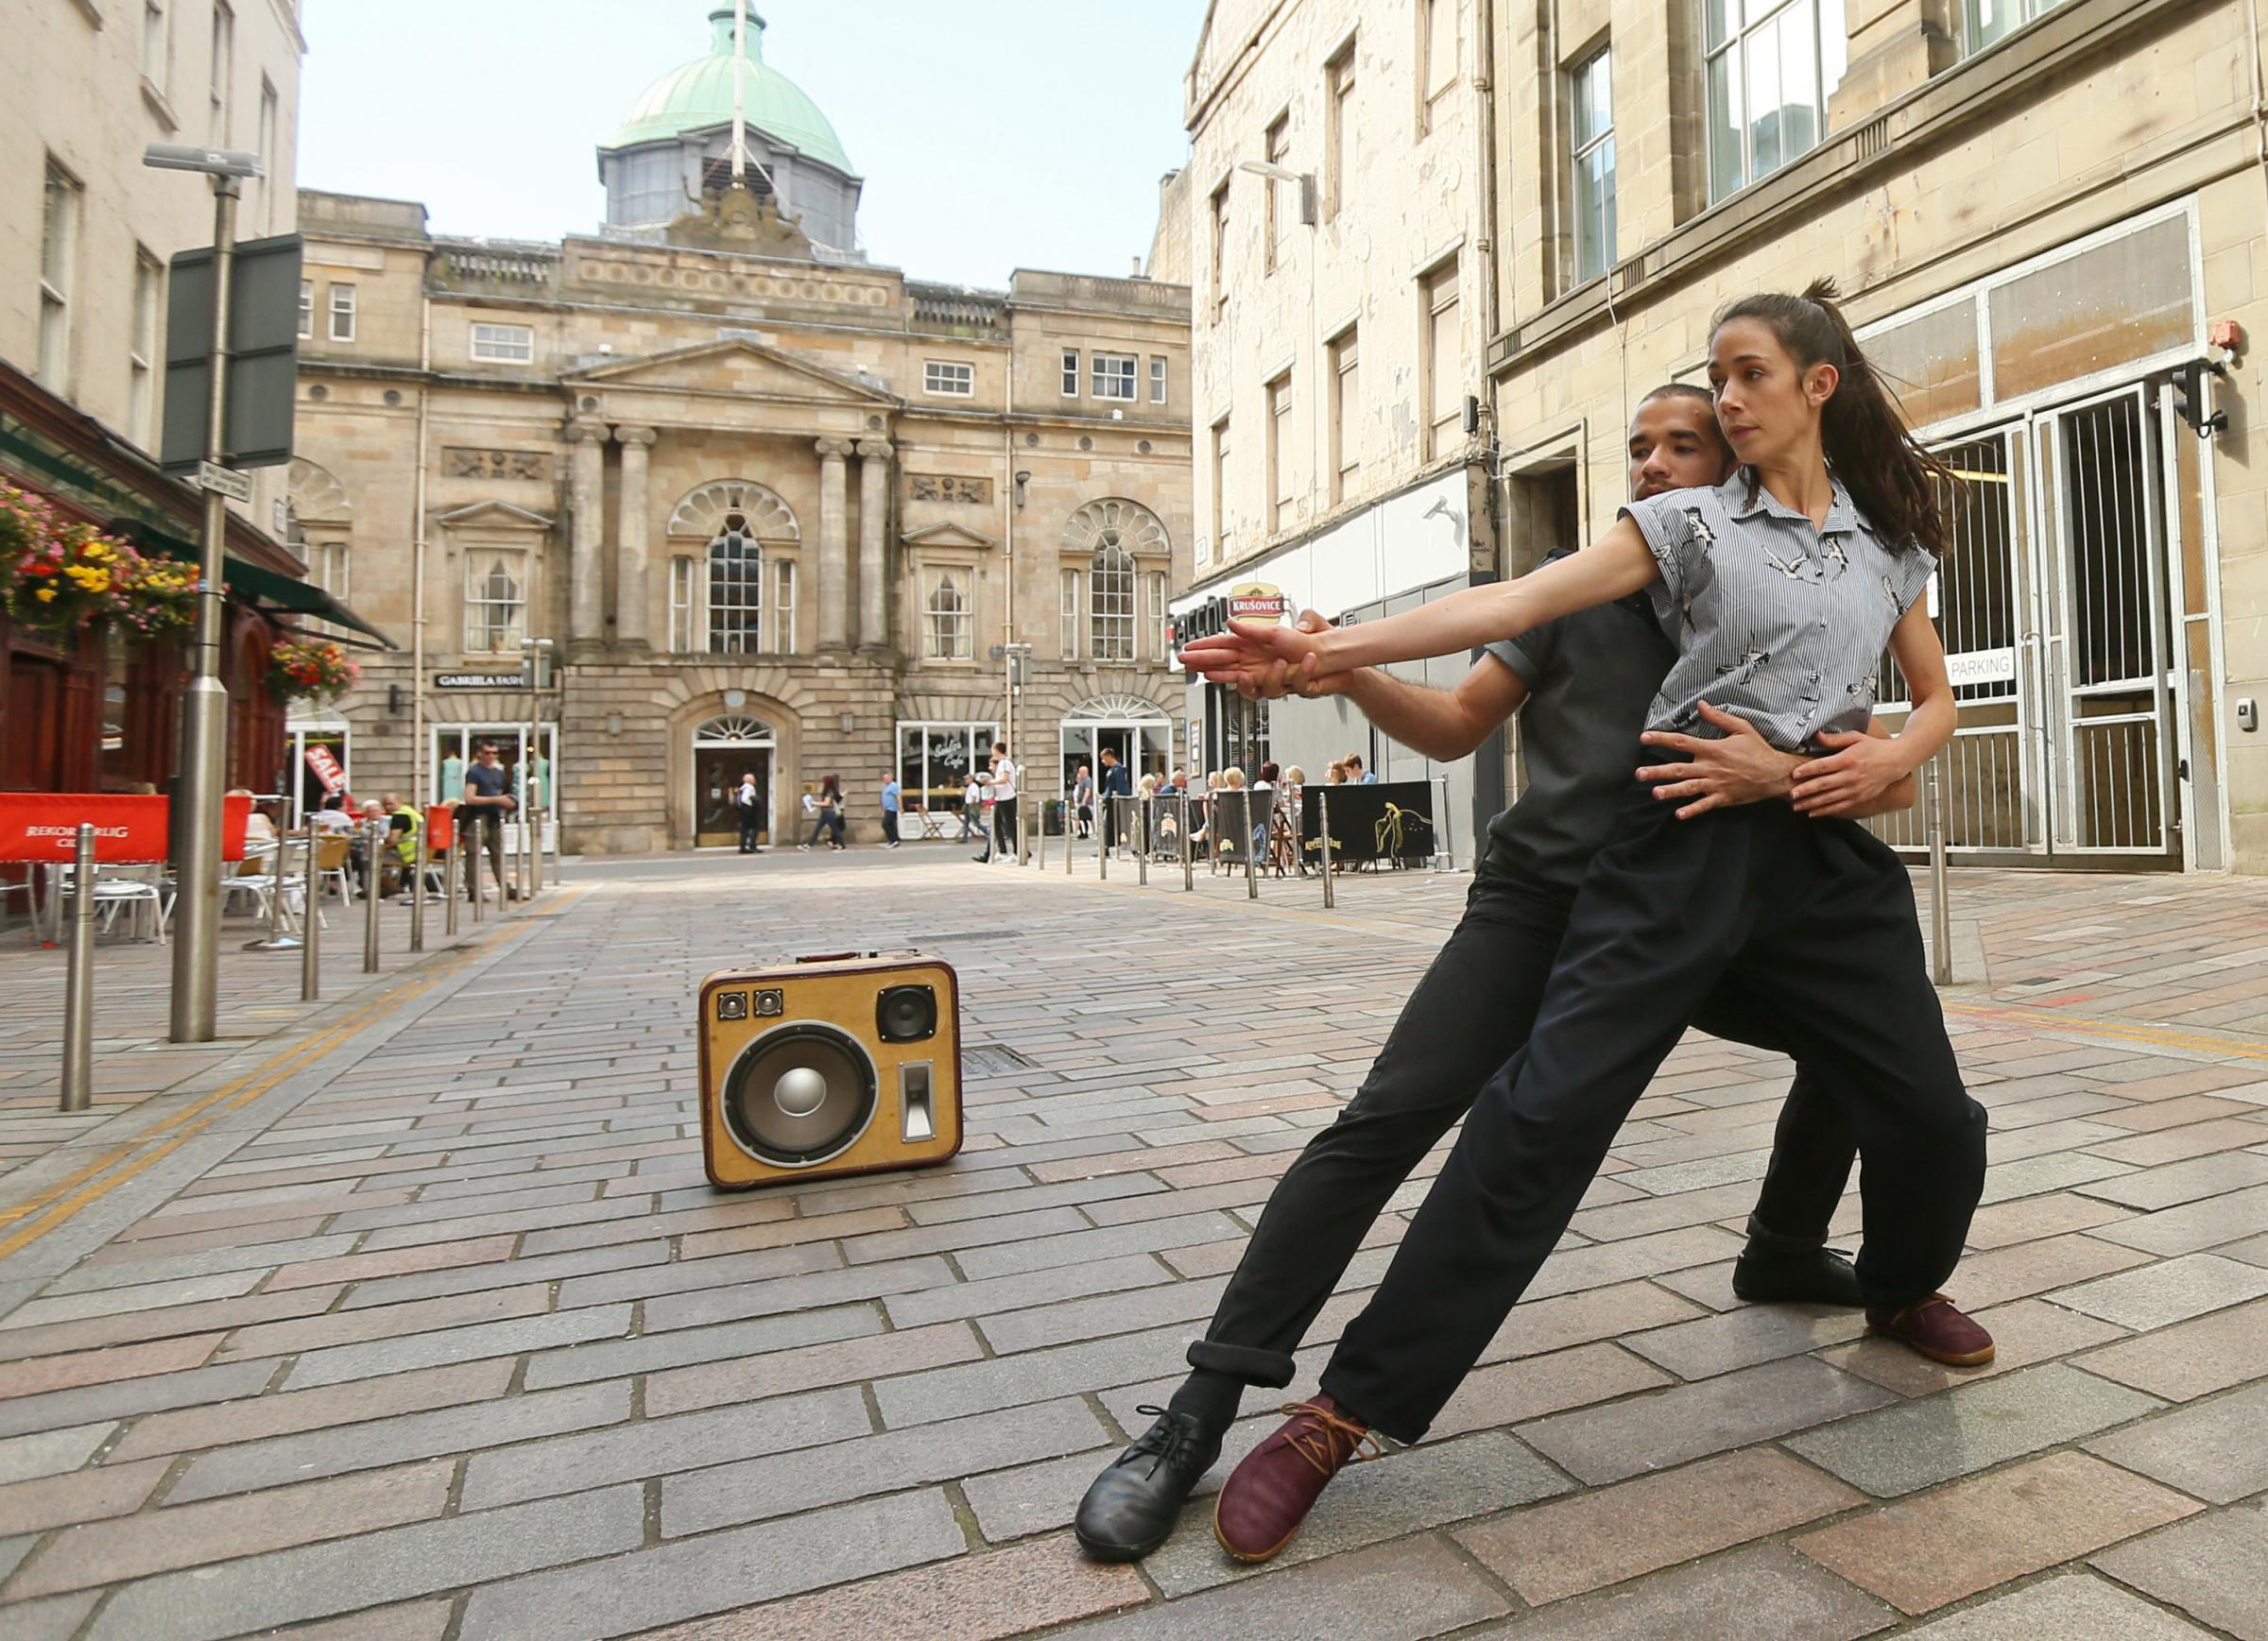 MOVE ON UP: Glasgow is second to none when it comes to family fun this summer.